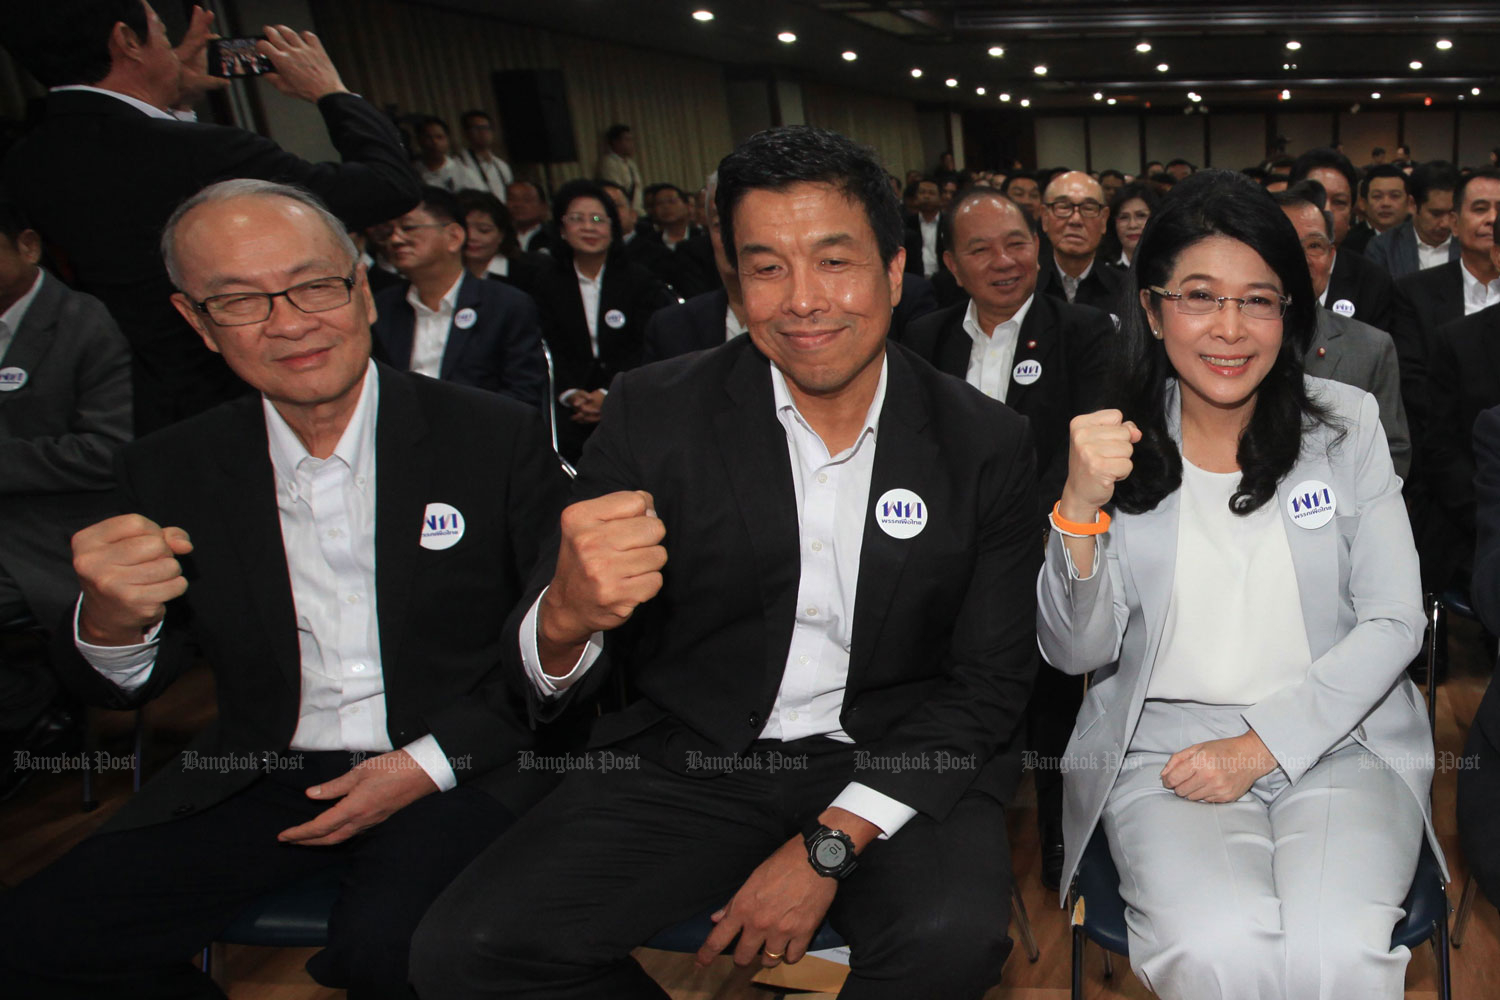 Chaikasem Nitisiri (left) or Chadchart Sittipunt (centre) of the Pheu Thai Party will represent the anti-coup alliance in the bicameral parliamentary vote for prime minister. (Photo by Somchai Poomlard)